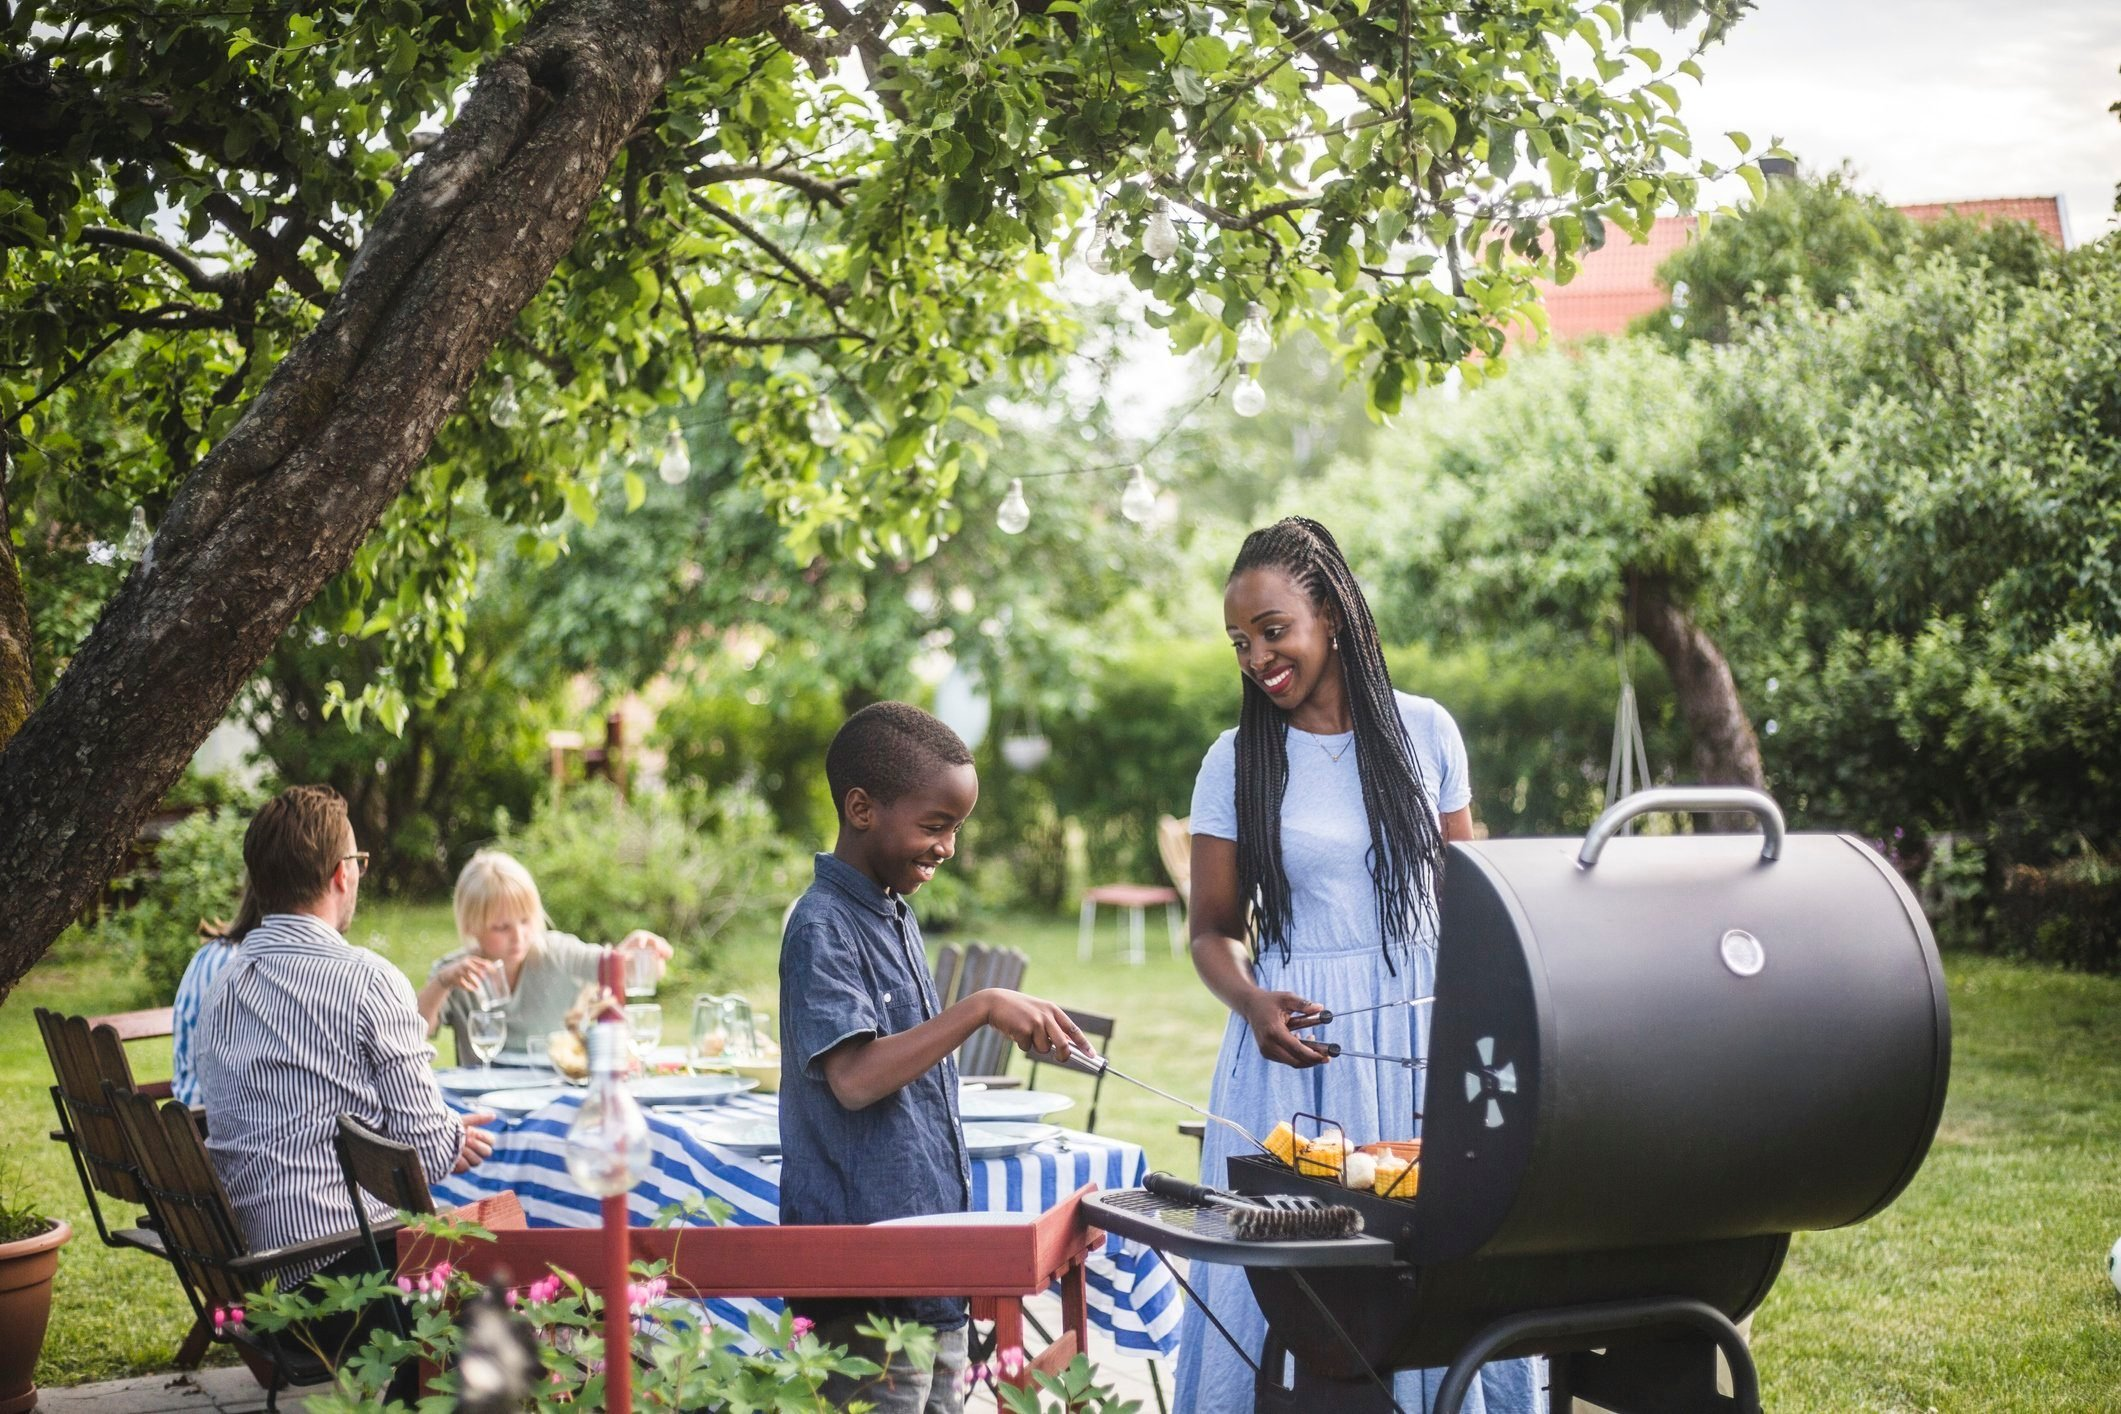 healthier grilling   mother and son grilling food for barbecue with family